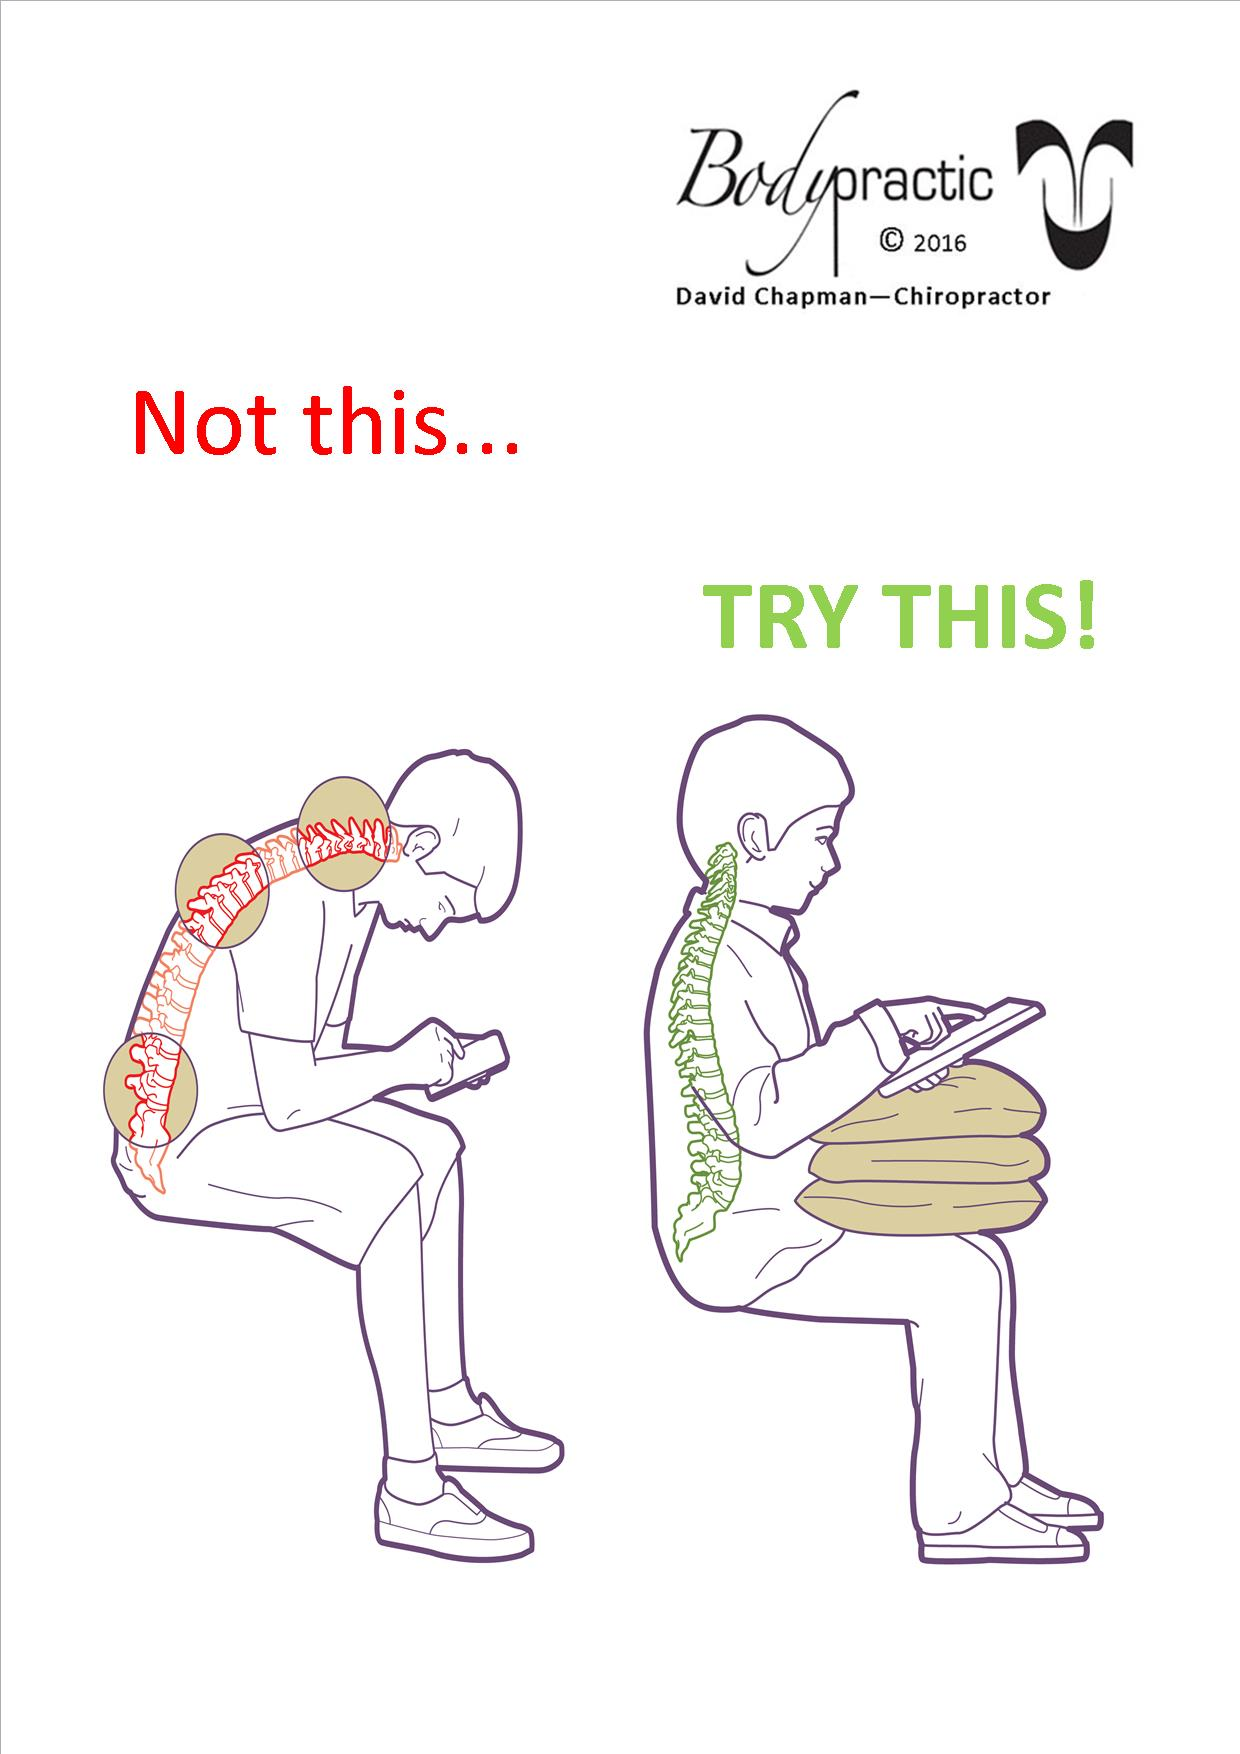 Seated posture - use pillows on your